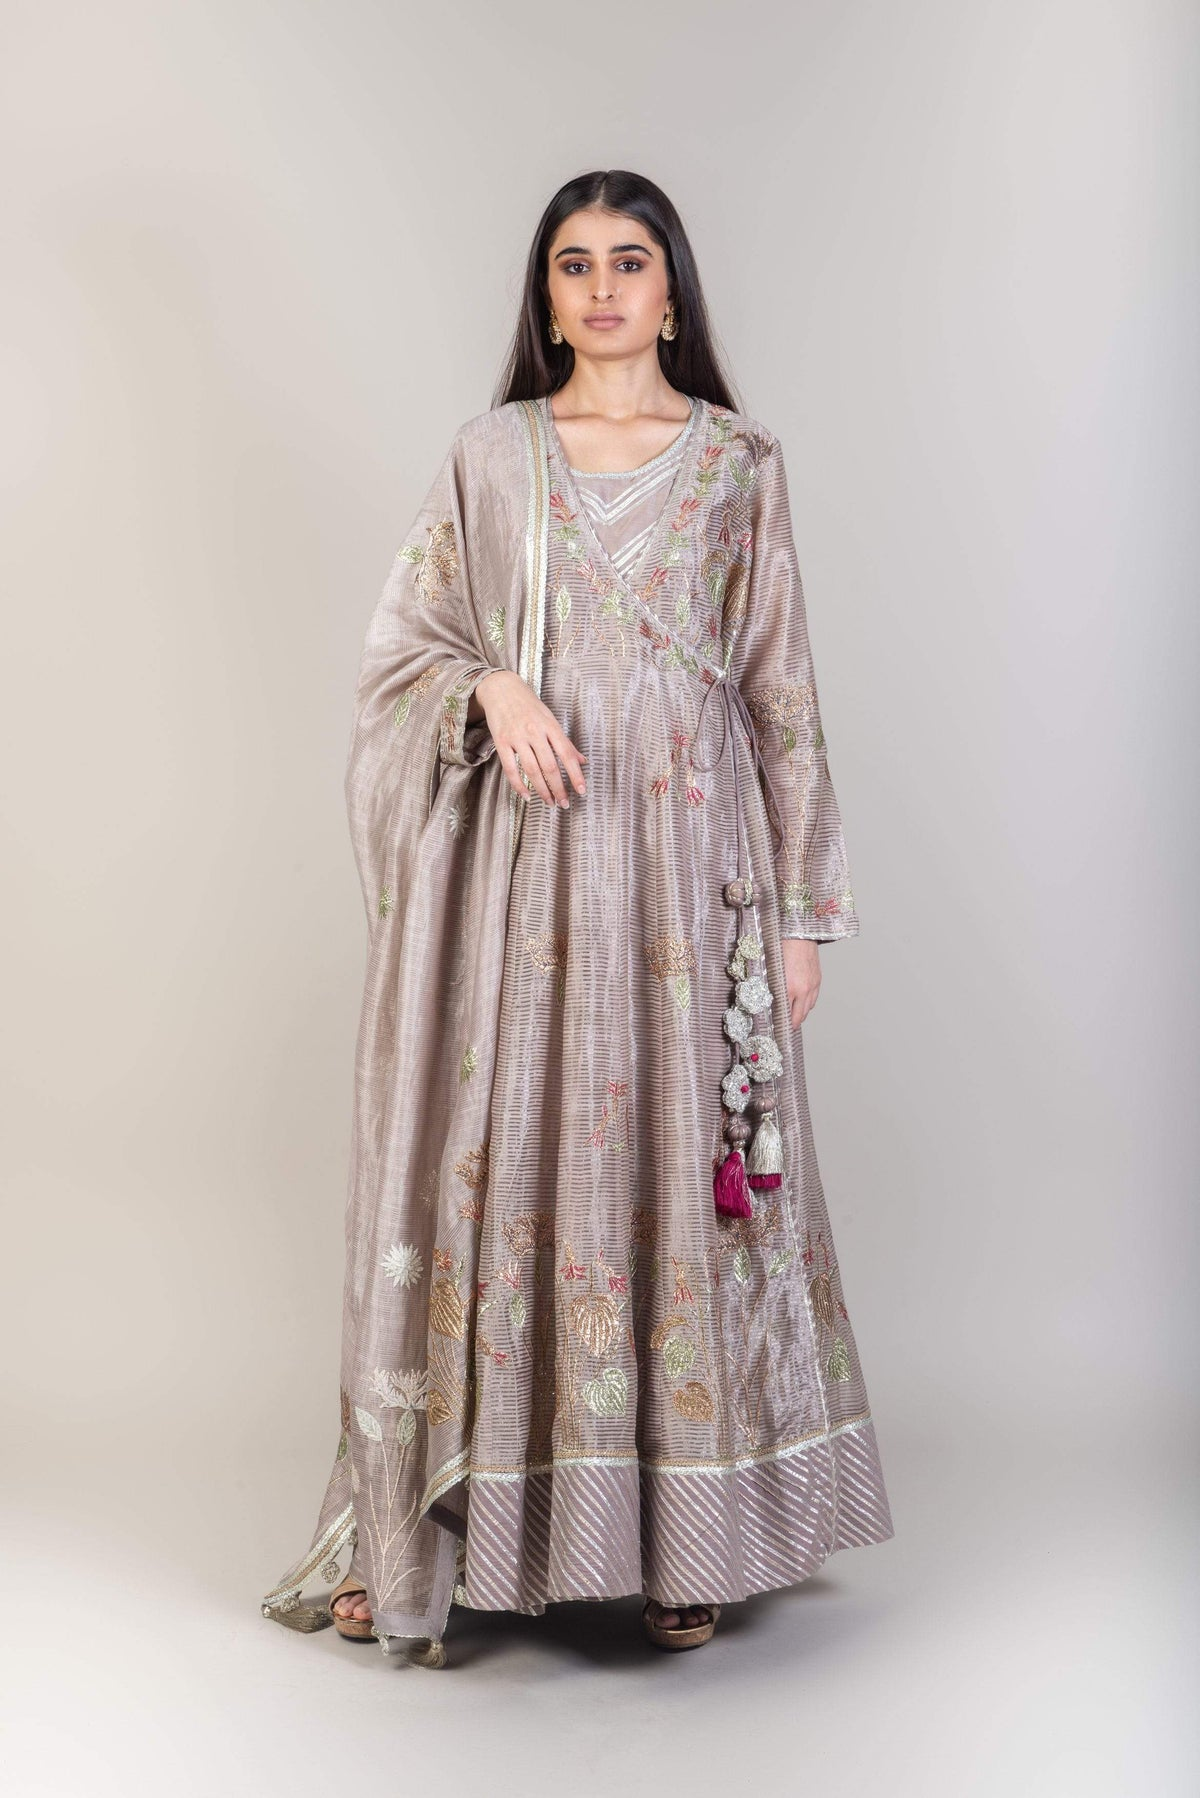 Simar Dugal Kurtas Beige chanderi stripe kurta set